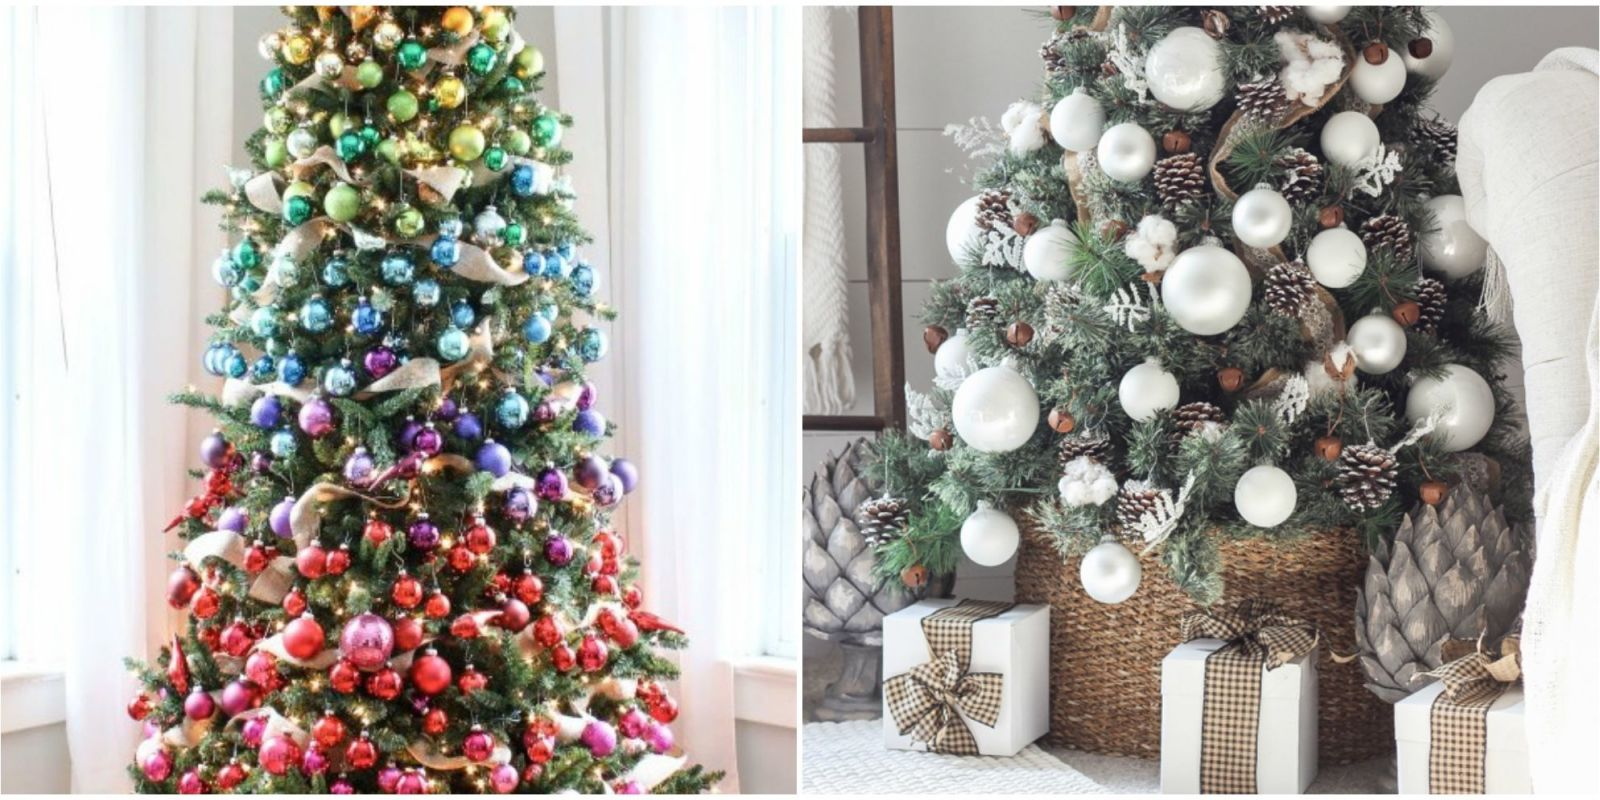 35 unique christmas tree decorations 2017 ideas for Christmas tree ornaments ideas